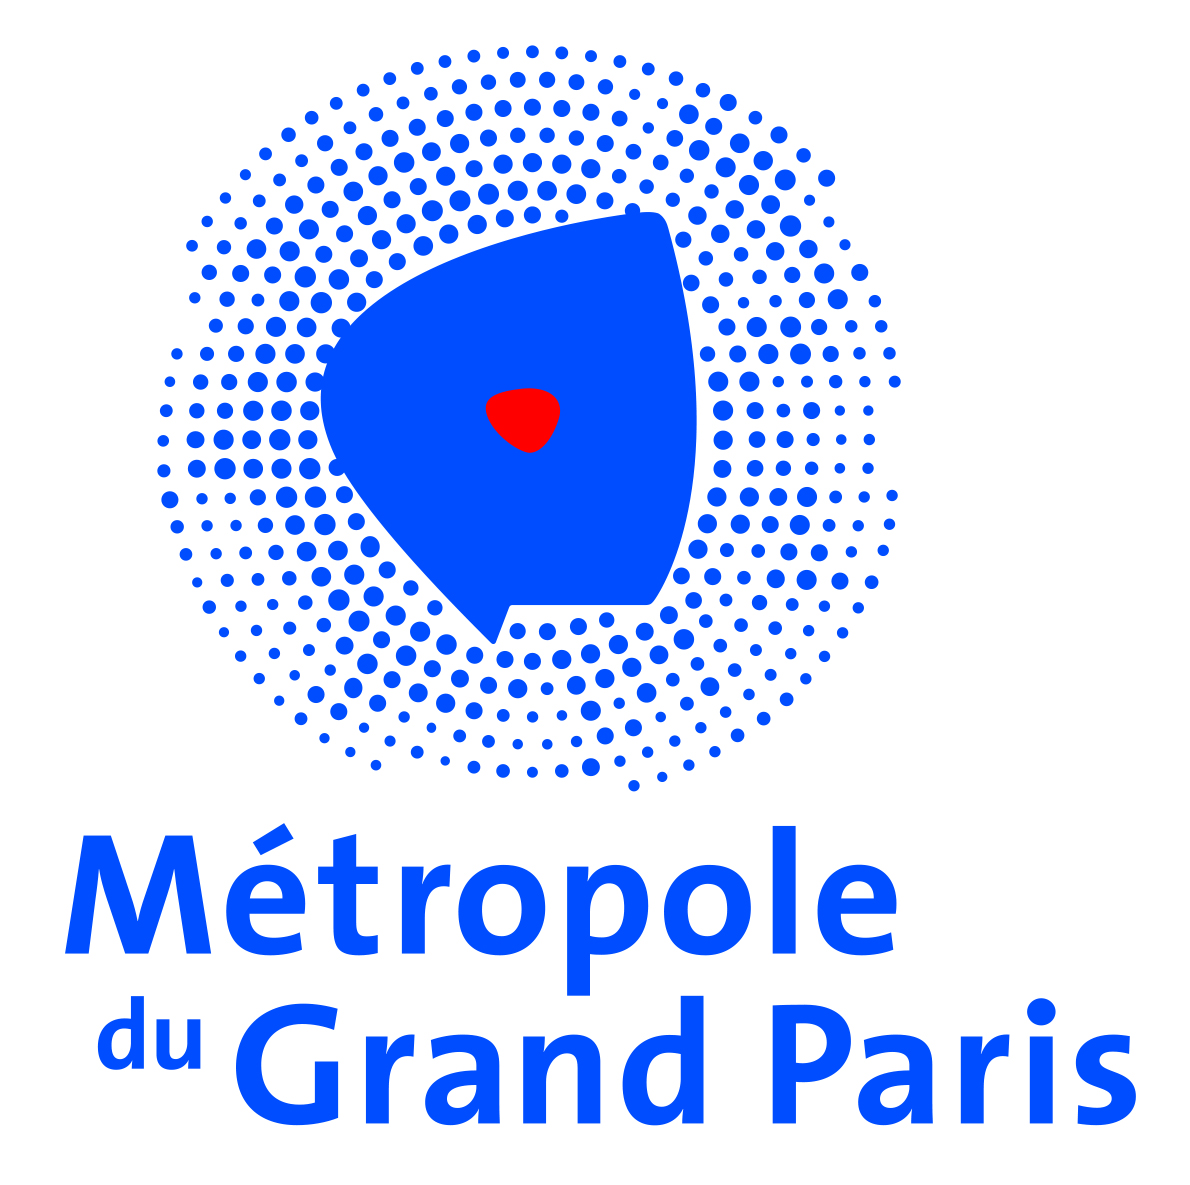 metropole du grand paris logo